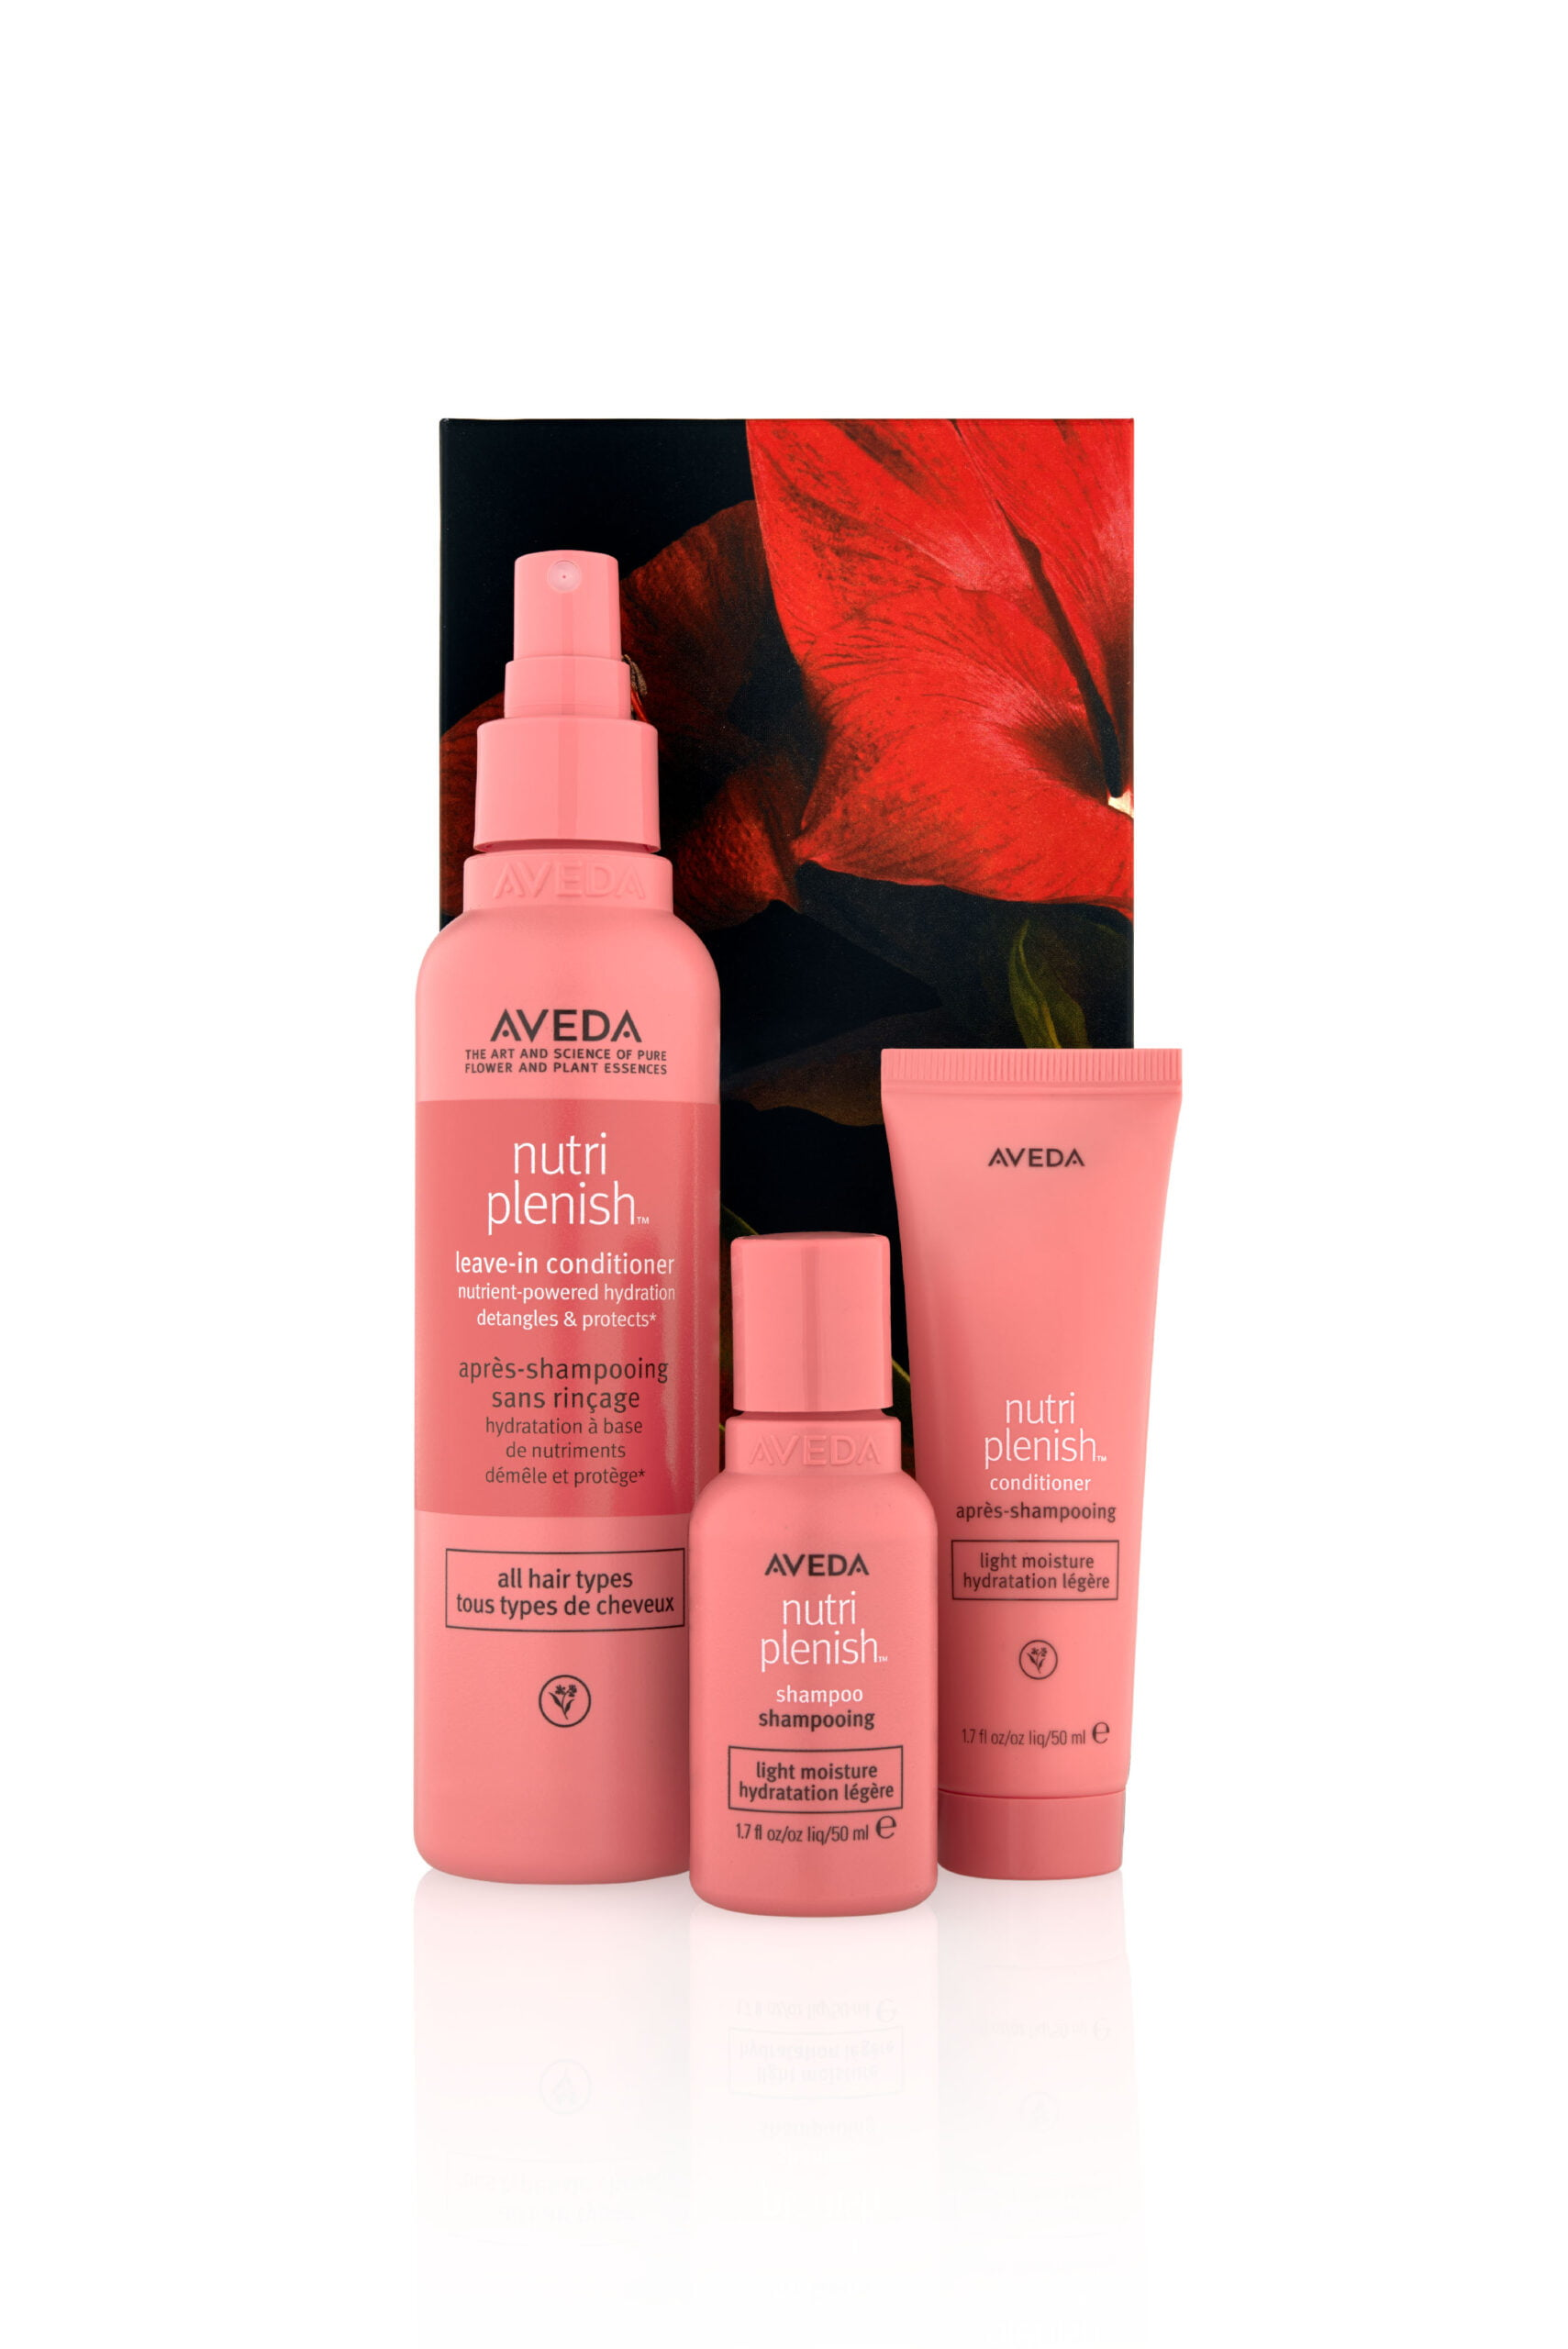 Nutriplenish Light Holiday gift set now at Zucci